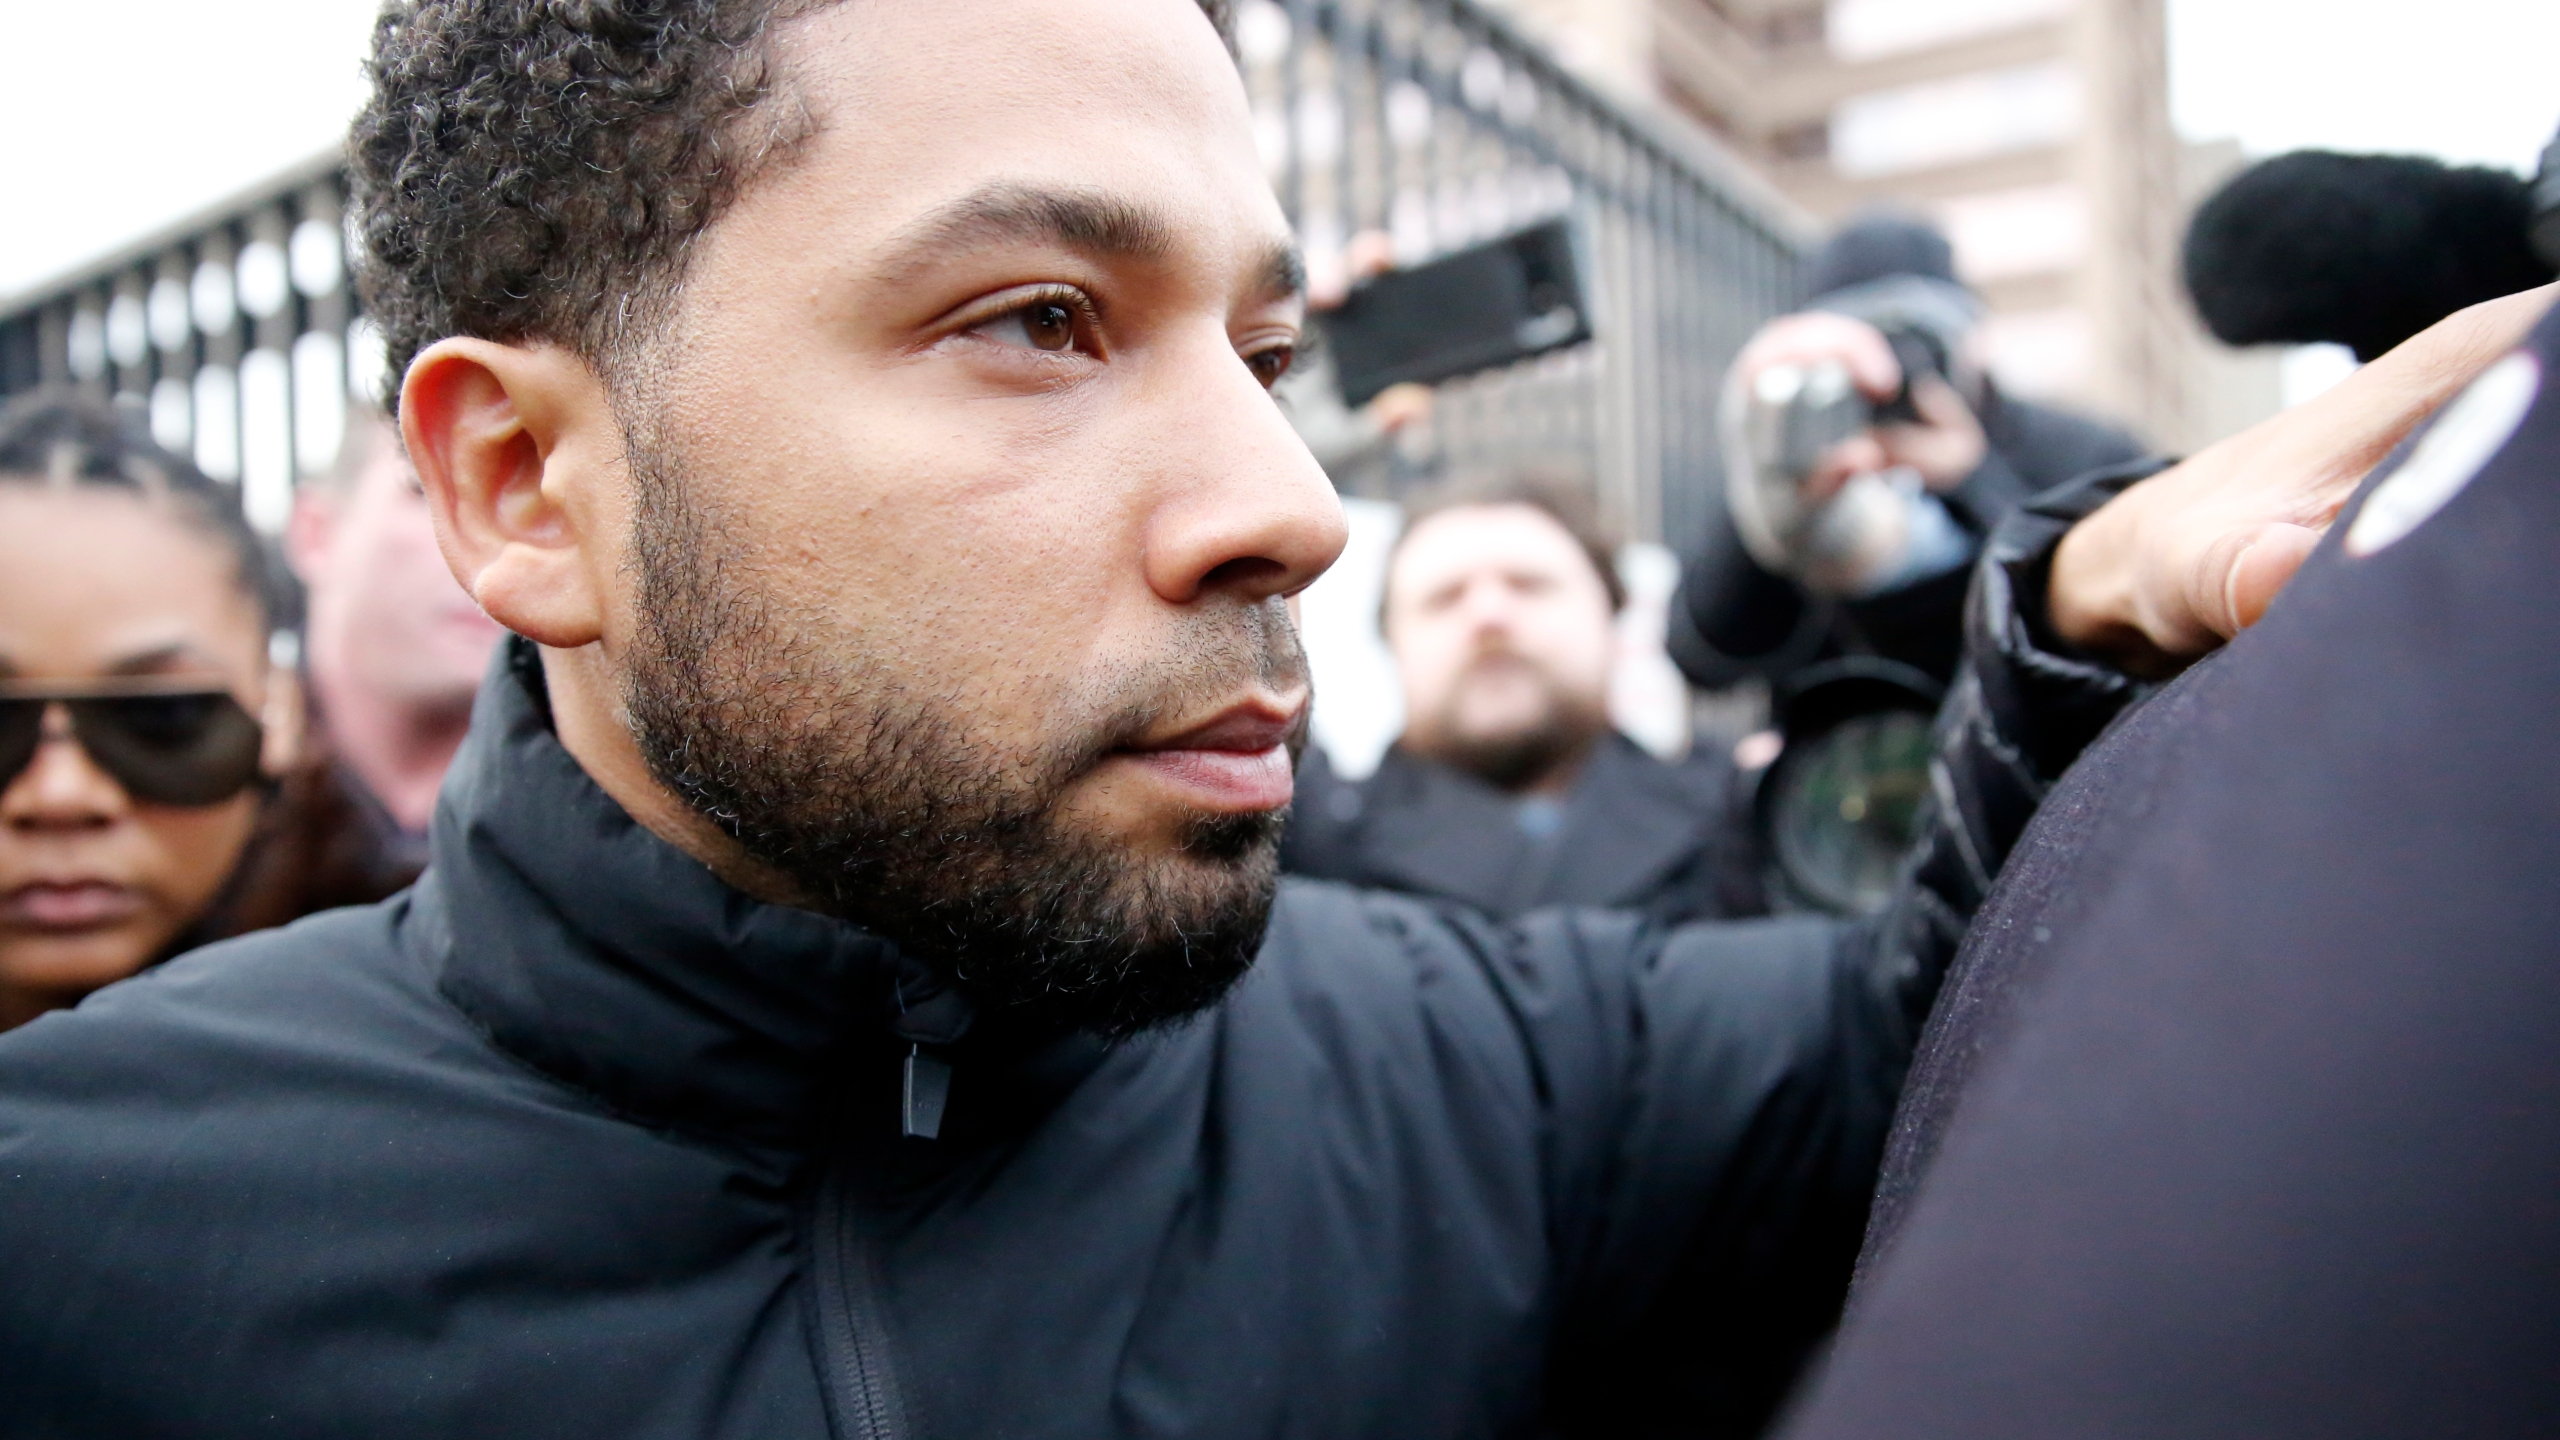 Empire actor Jussie Smollett leaves Cook County jail after posting bond on February 21, 2019 in Chicago, Illinois. (Credit: Nuccio DiNuzzo/Getty Images)